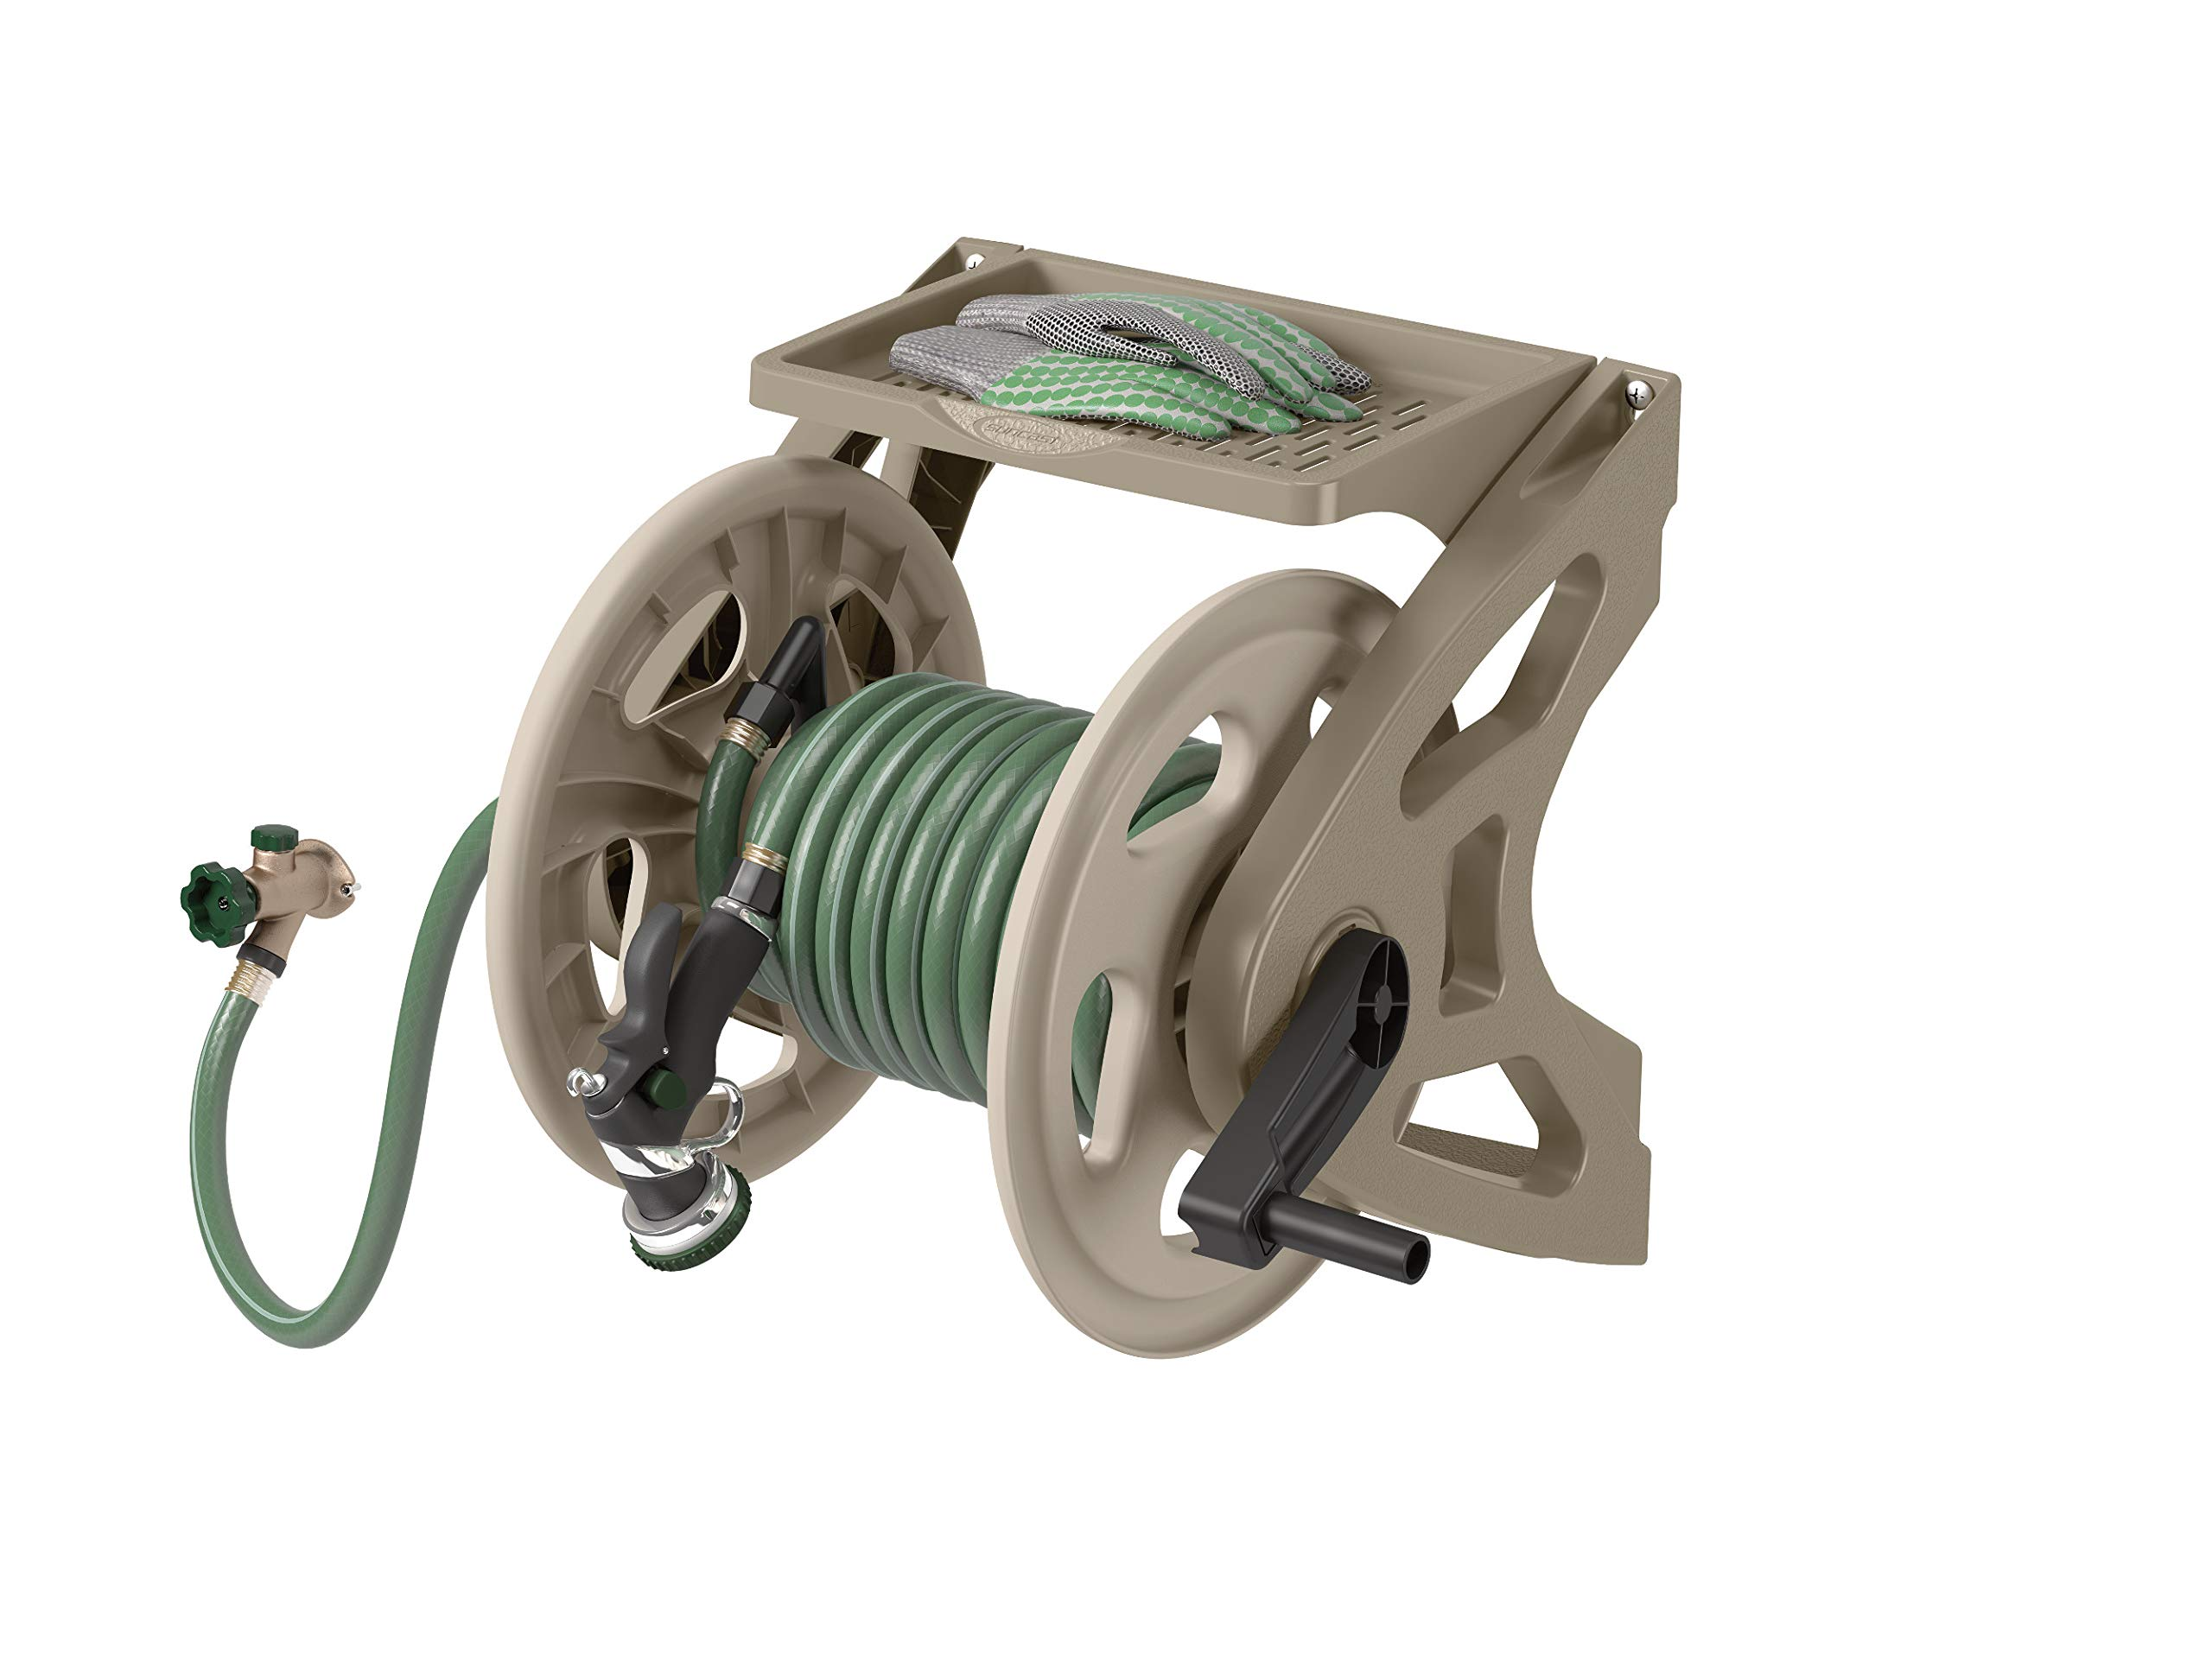 Suncast Resin Wall Mounted Handler Hose Real - Durable Outdoor Hose Reel with Crank Handle and Storage Tray - 200' Hose Capacity - Taupe by Suncast